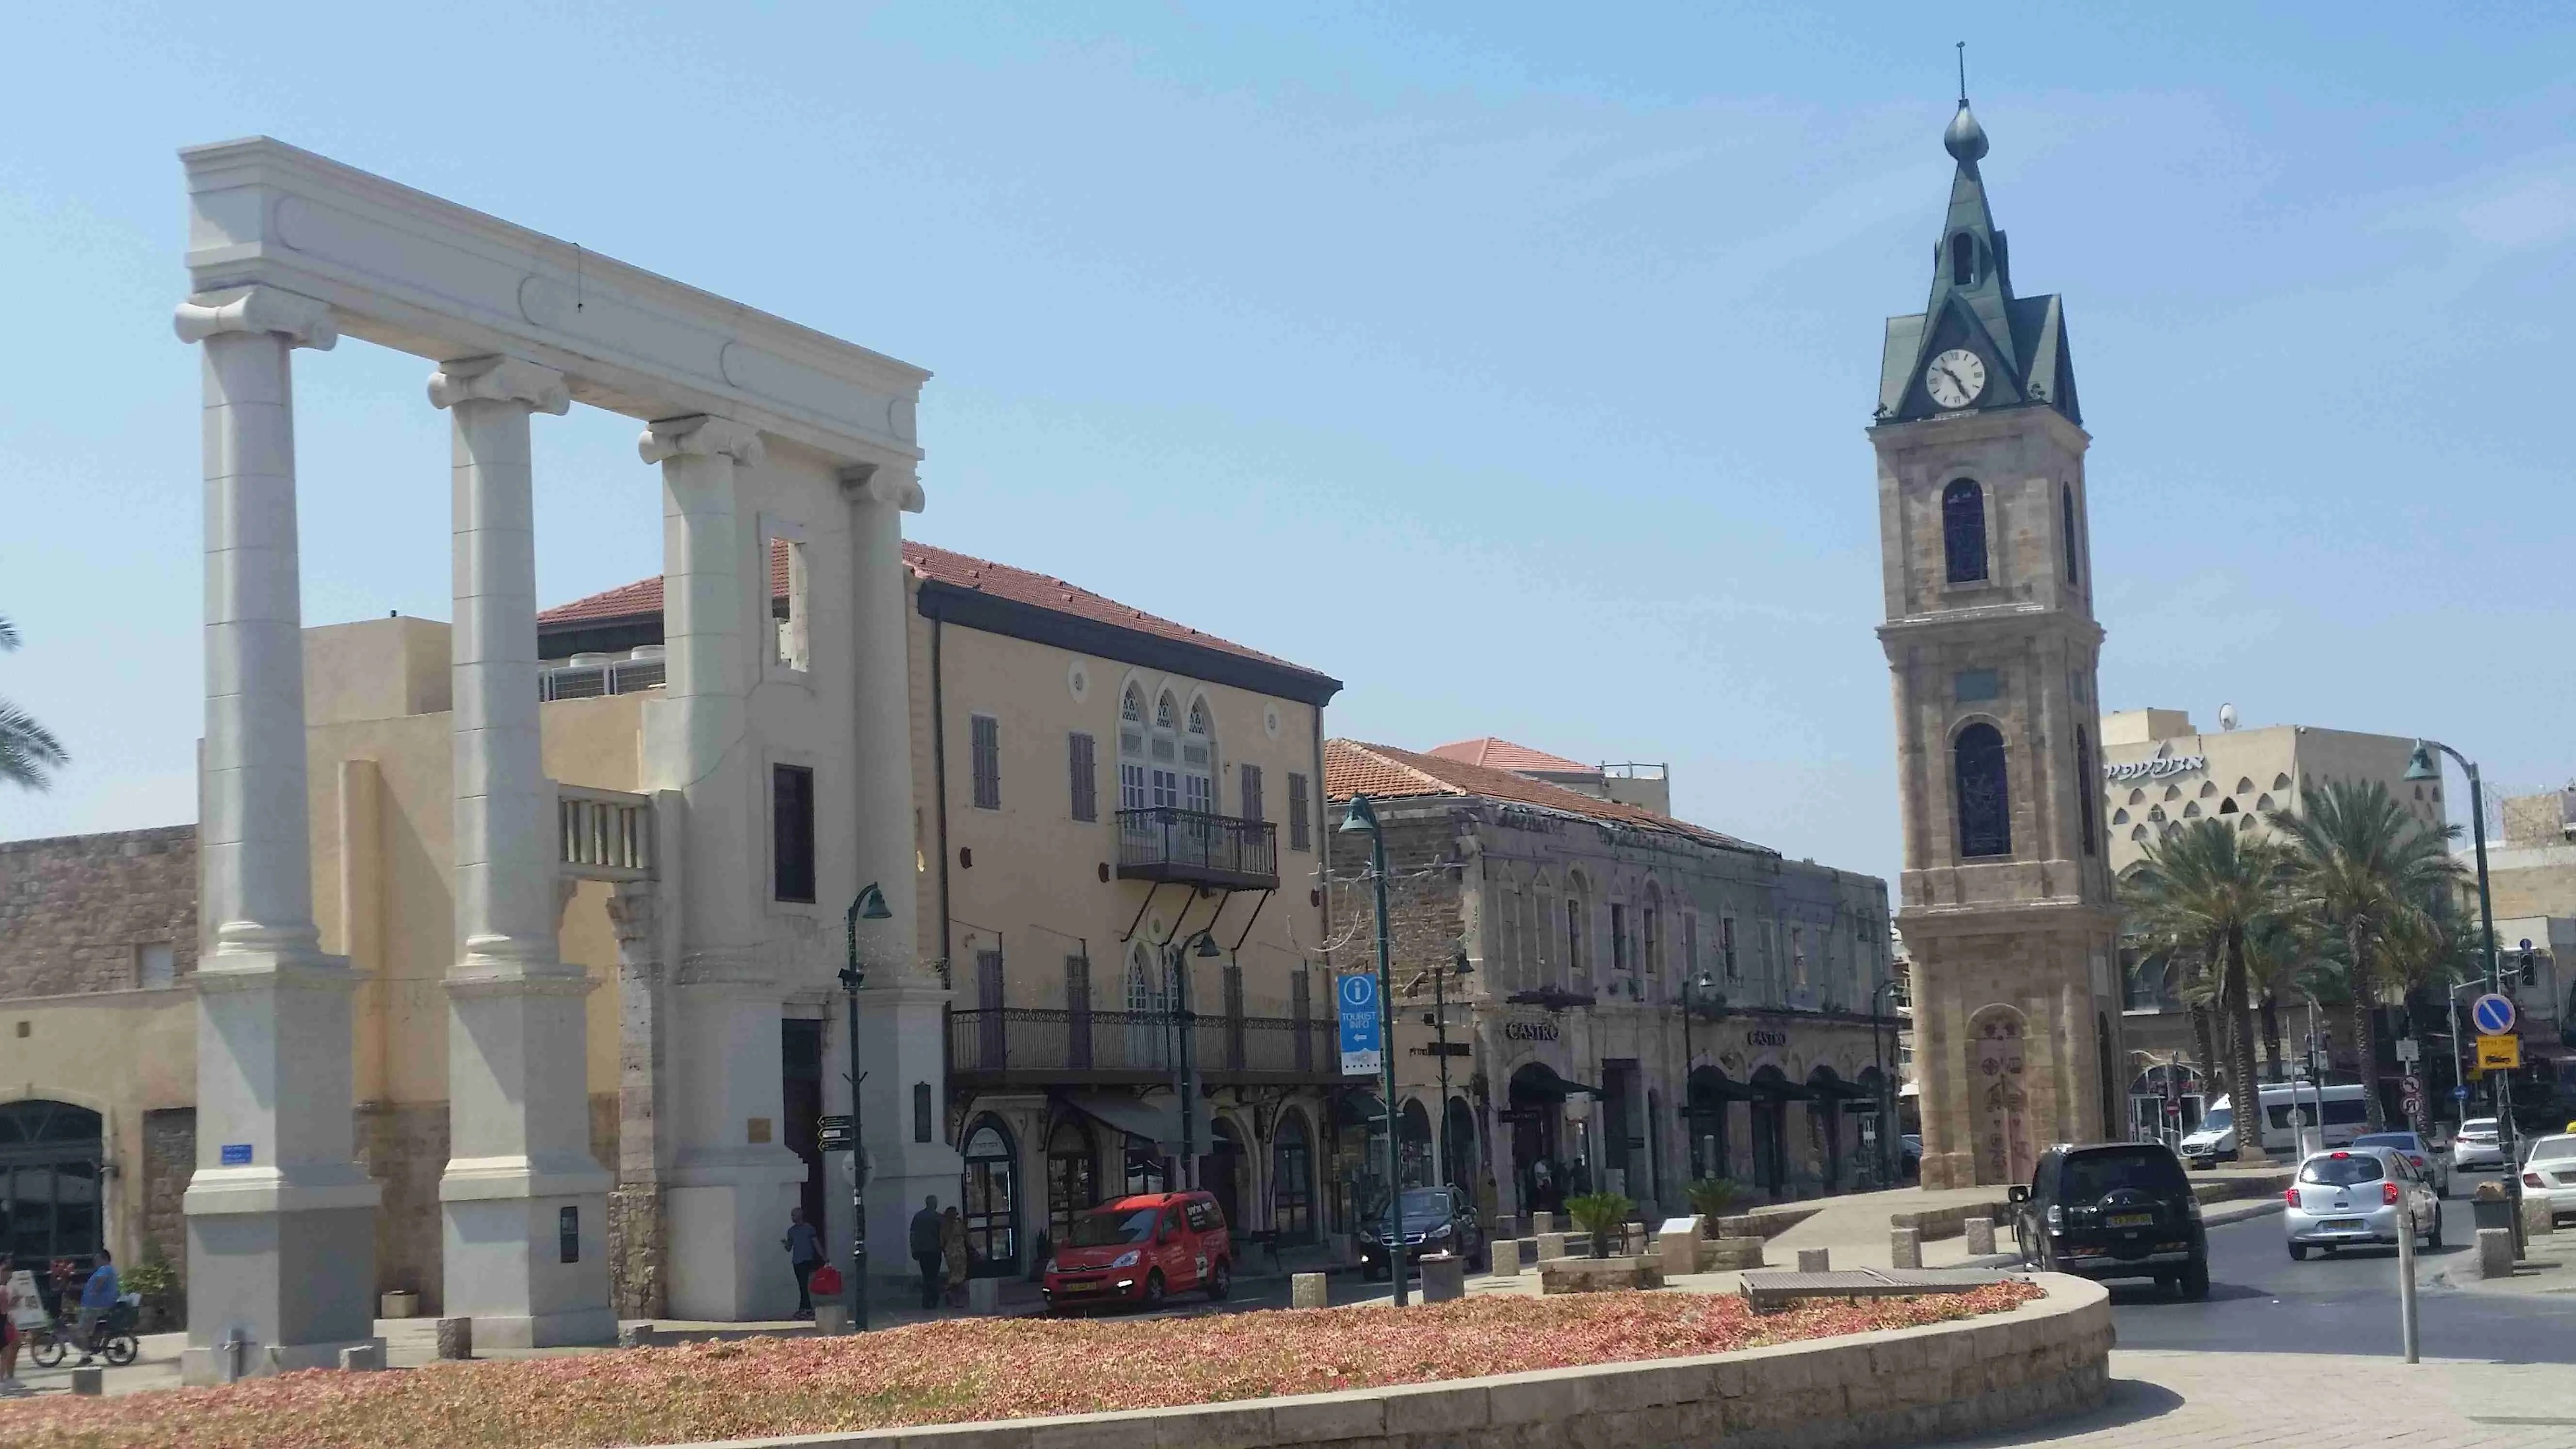 The clocktower and the restored facade